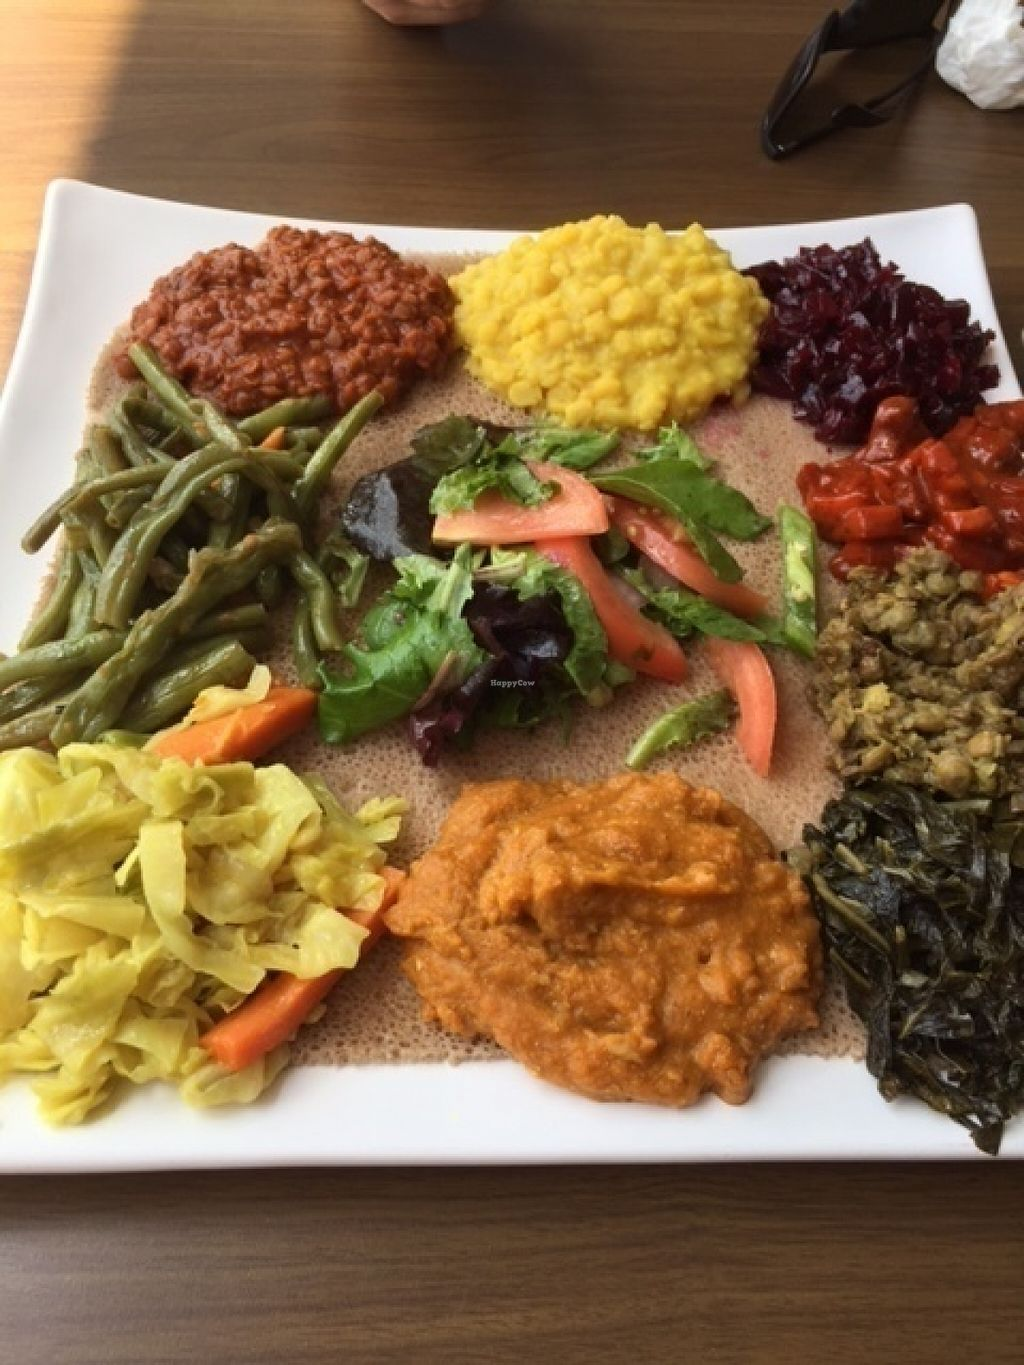 """Photo of Ababa  by <a href=""""/members/profile/kcontini"""">kcontini</a> <br/>Veggie Combo.  Yum! <br/> July 13, 2016  - <a href='/contact/abuse/image/76481/159575'>Report</a>"""